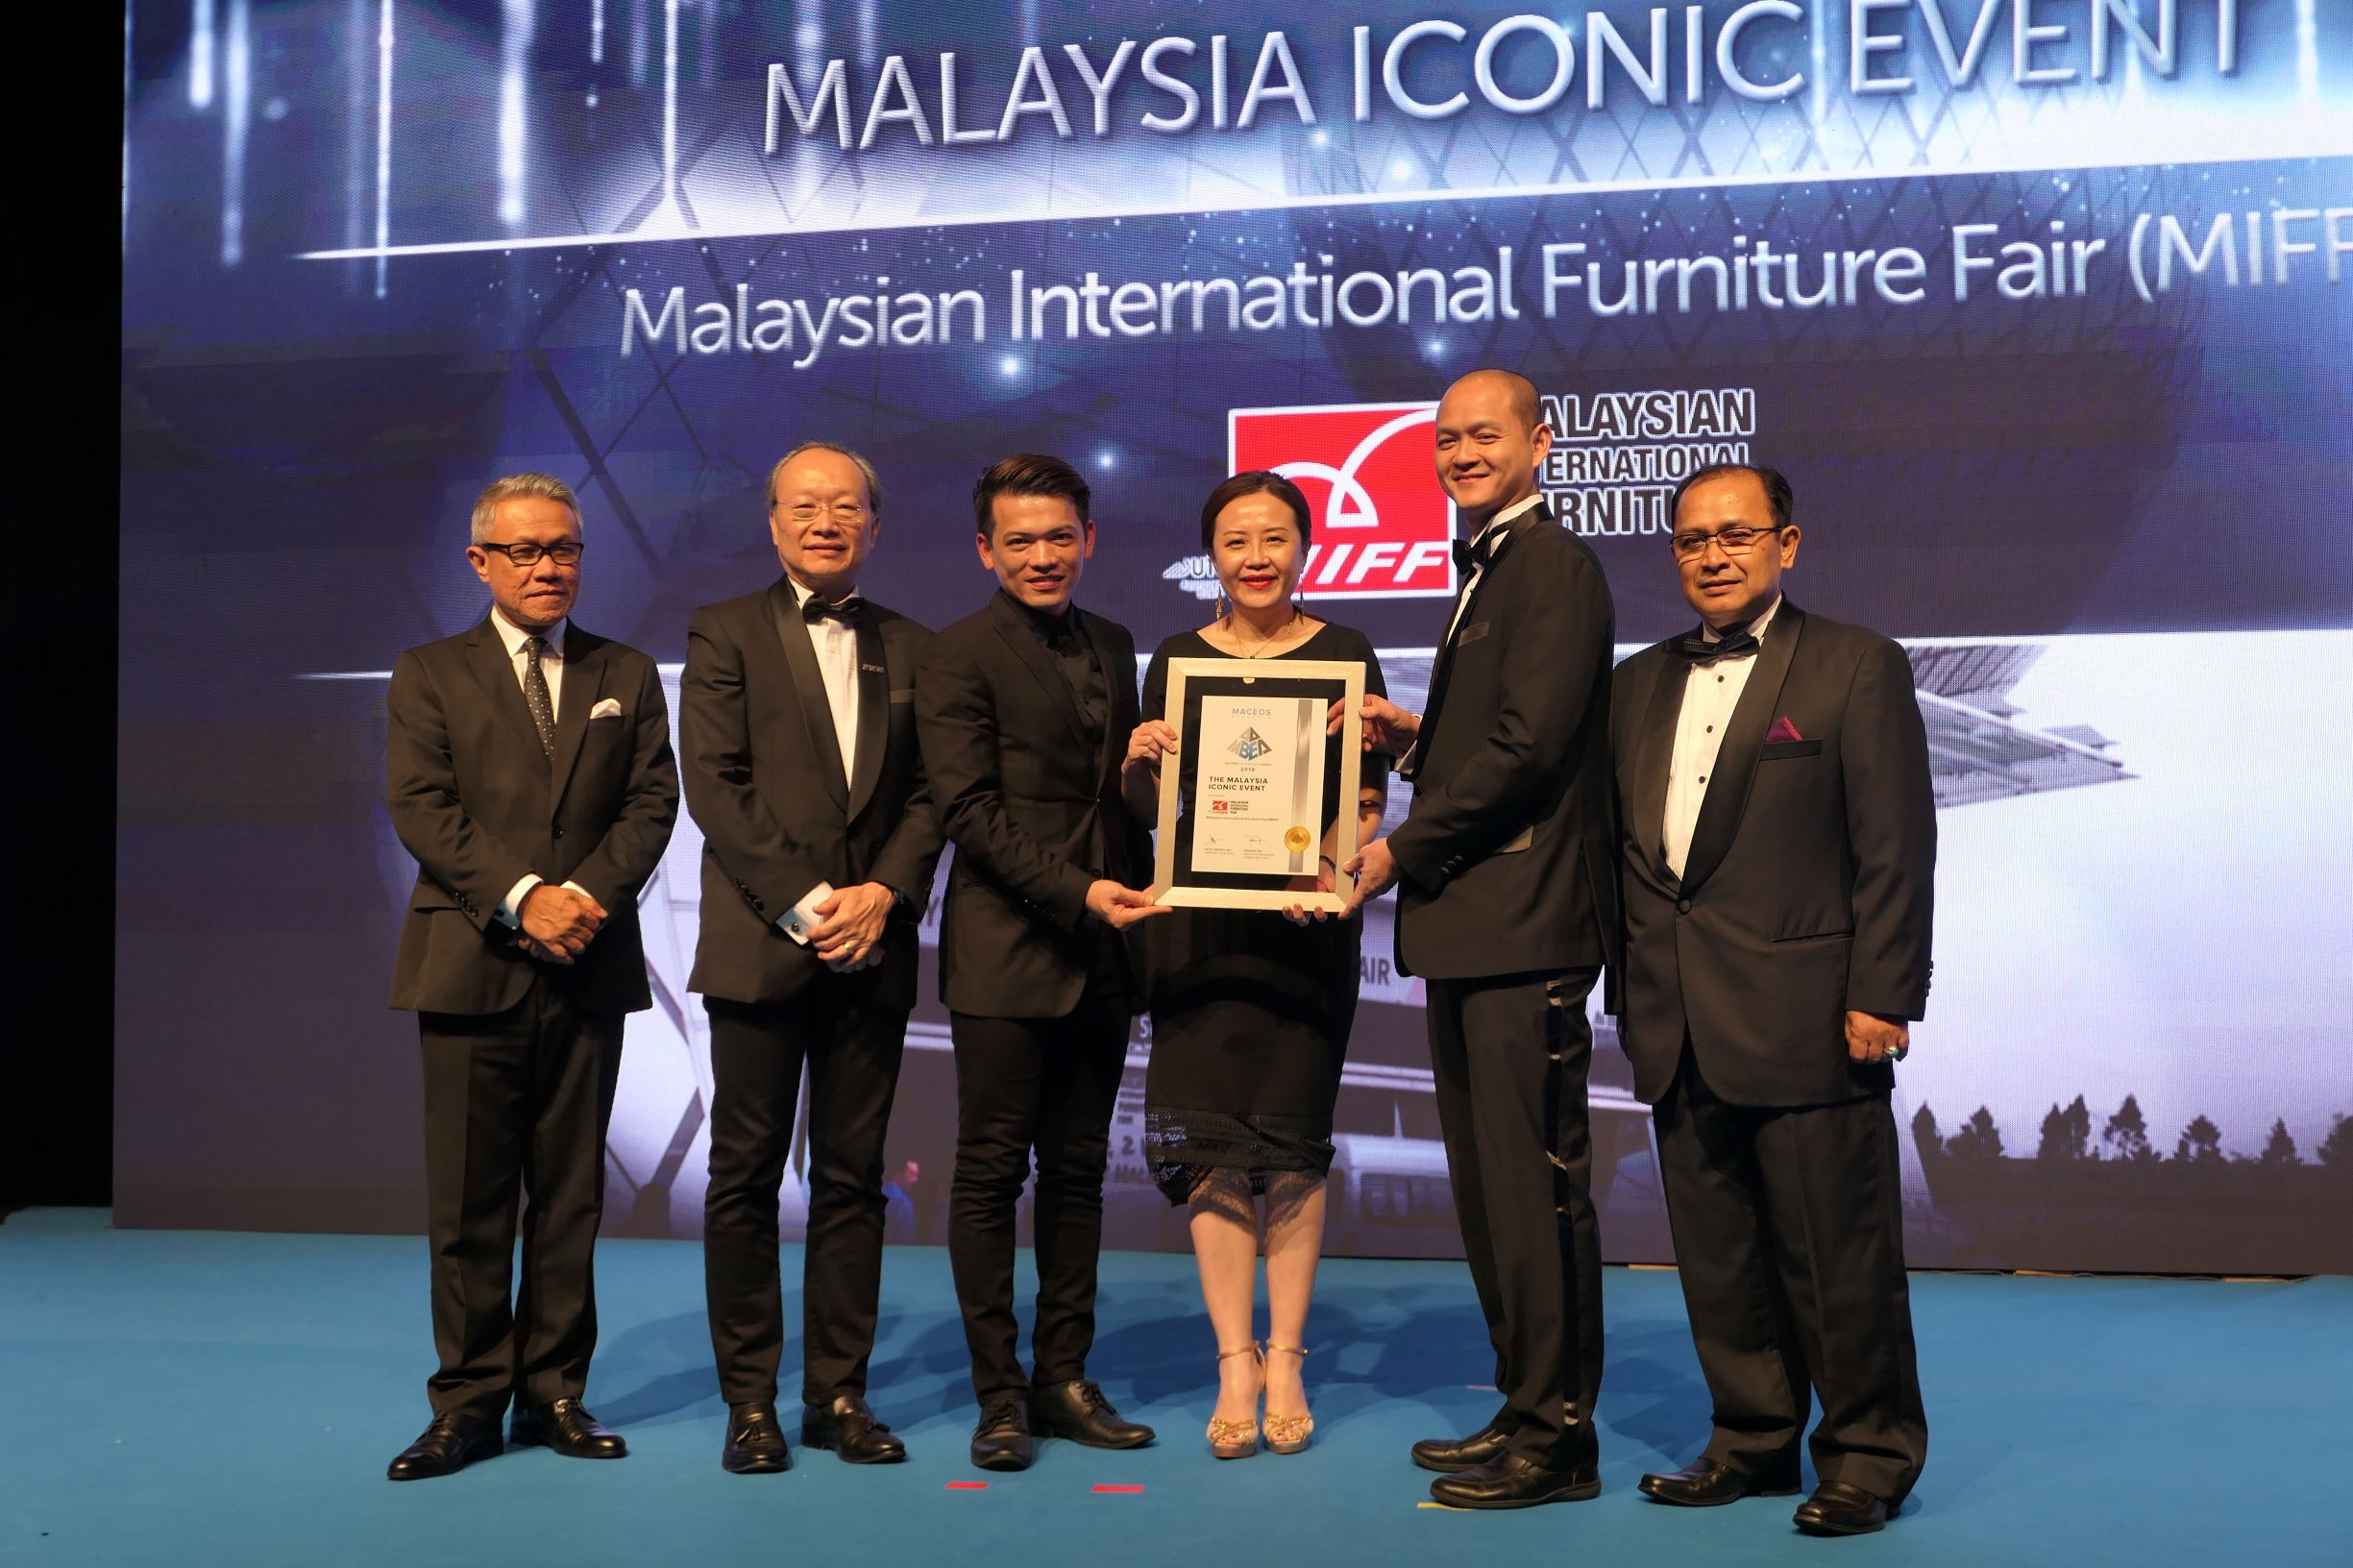 MIFF Wins Inaugural Malaysia Iconic Event Awards